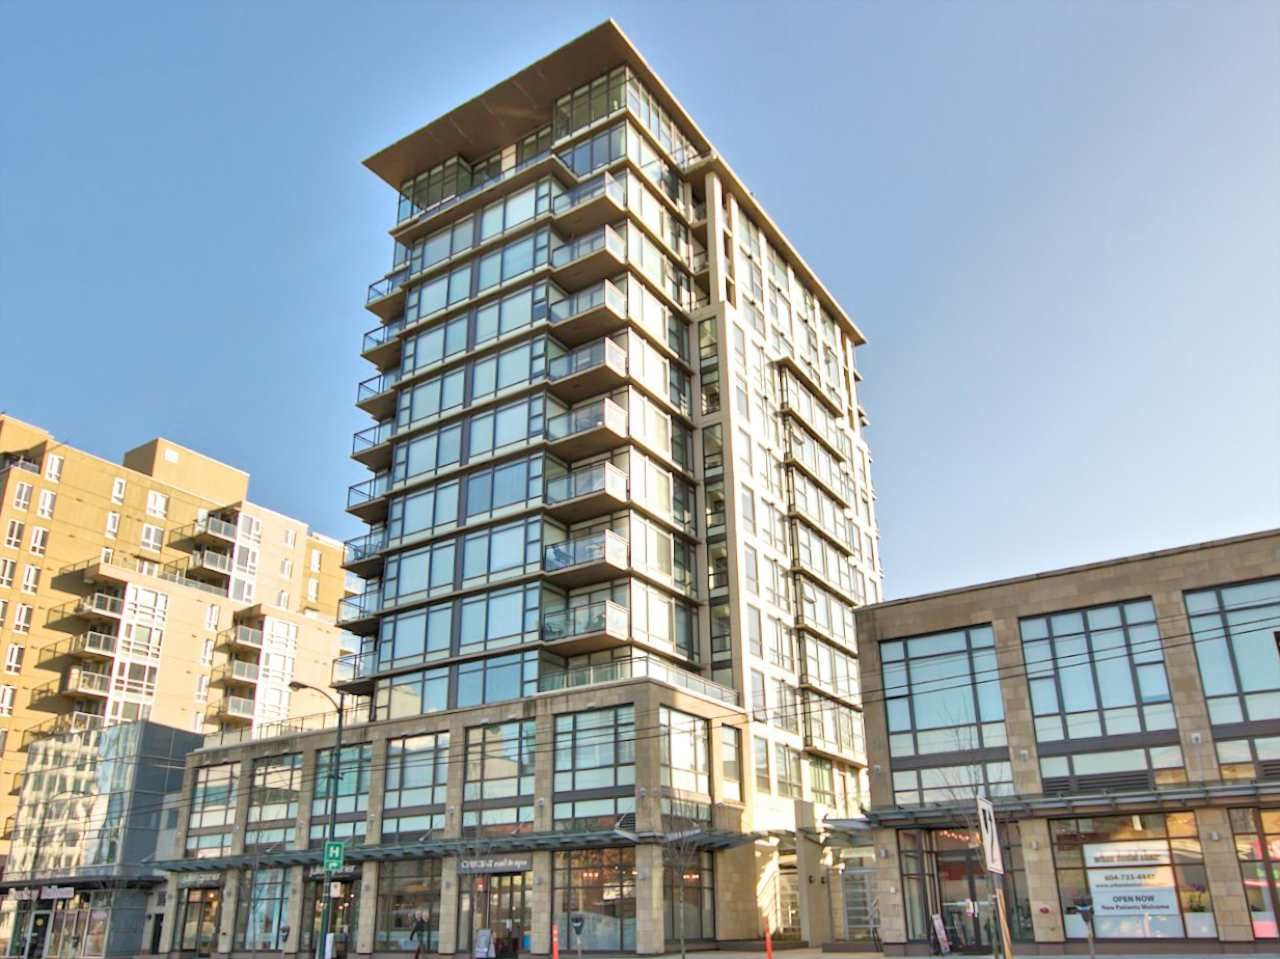 """Main Photo: 209 1068 W BROADWAY in Vancouver: Fairview VW Condo for sale in """"THE ZONE"""" (Vancouver West)  : MLS®# R2019129"""